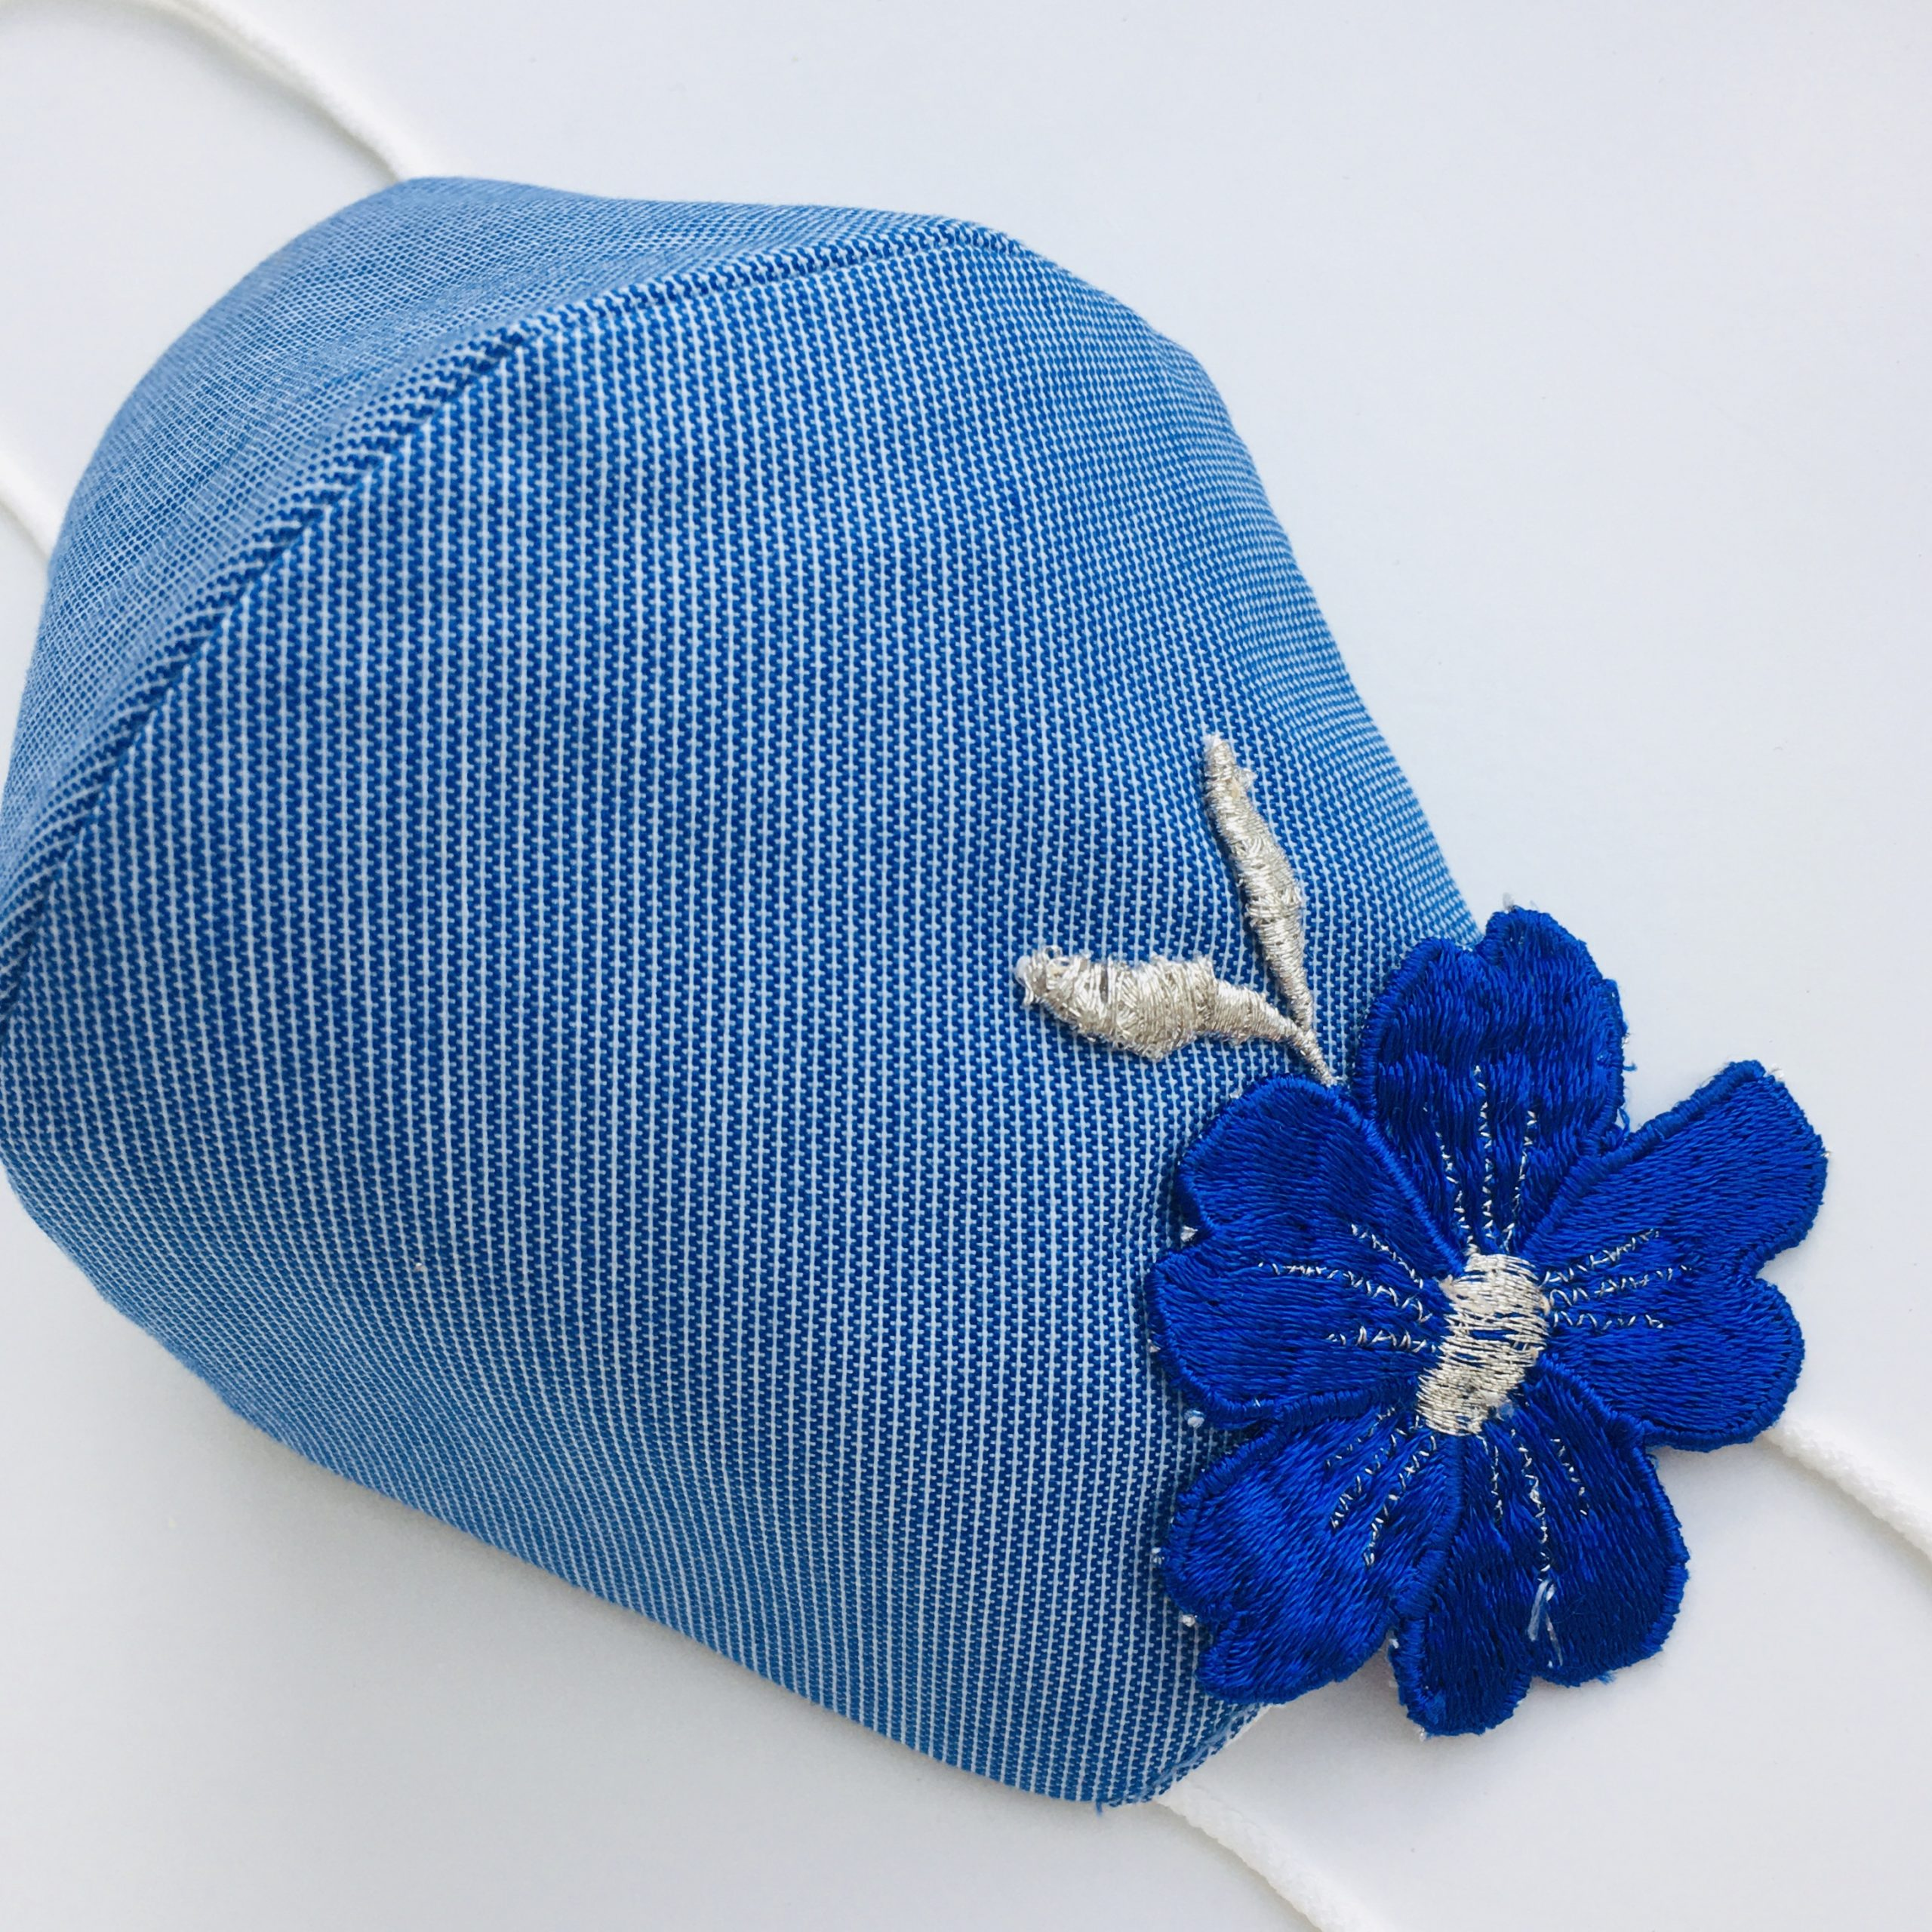 Protective Face Mask Blue with Royal Blue Flower Embroidery